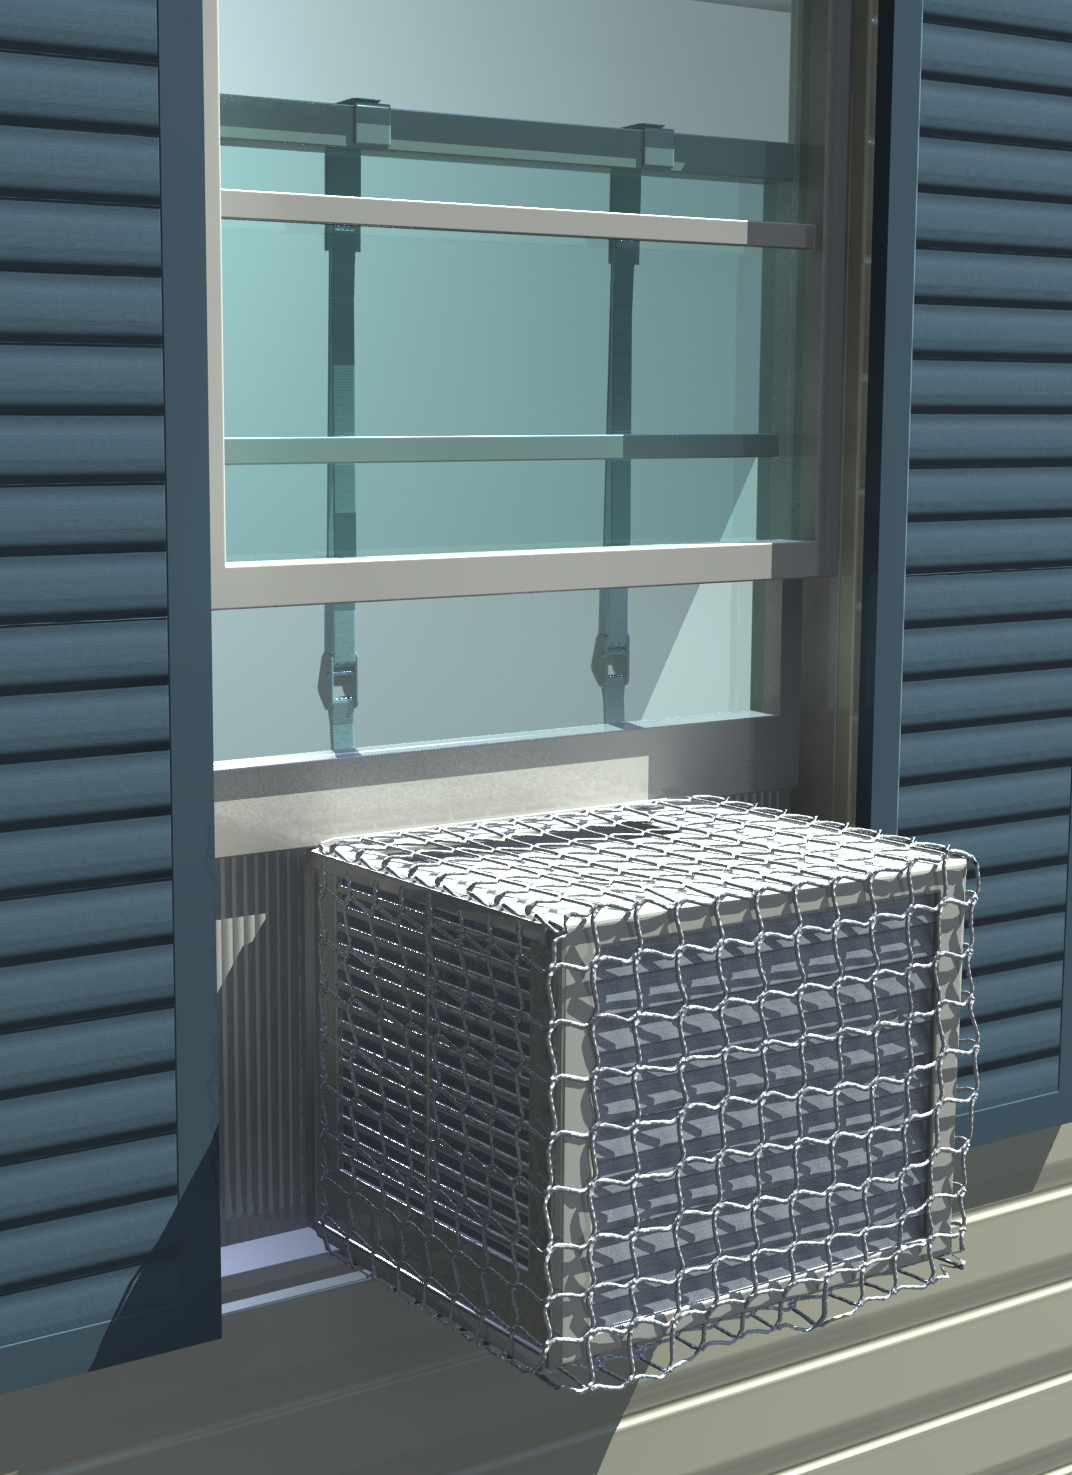 #527879 The AC Safety Net Fundable Crowdfunding For Small  Most Effective 10035 5k Btu Window Air Conditioner pictures with 1072x1475 px on helpvideos.info - Air Conditioners, Air Coolers and more